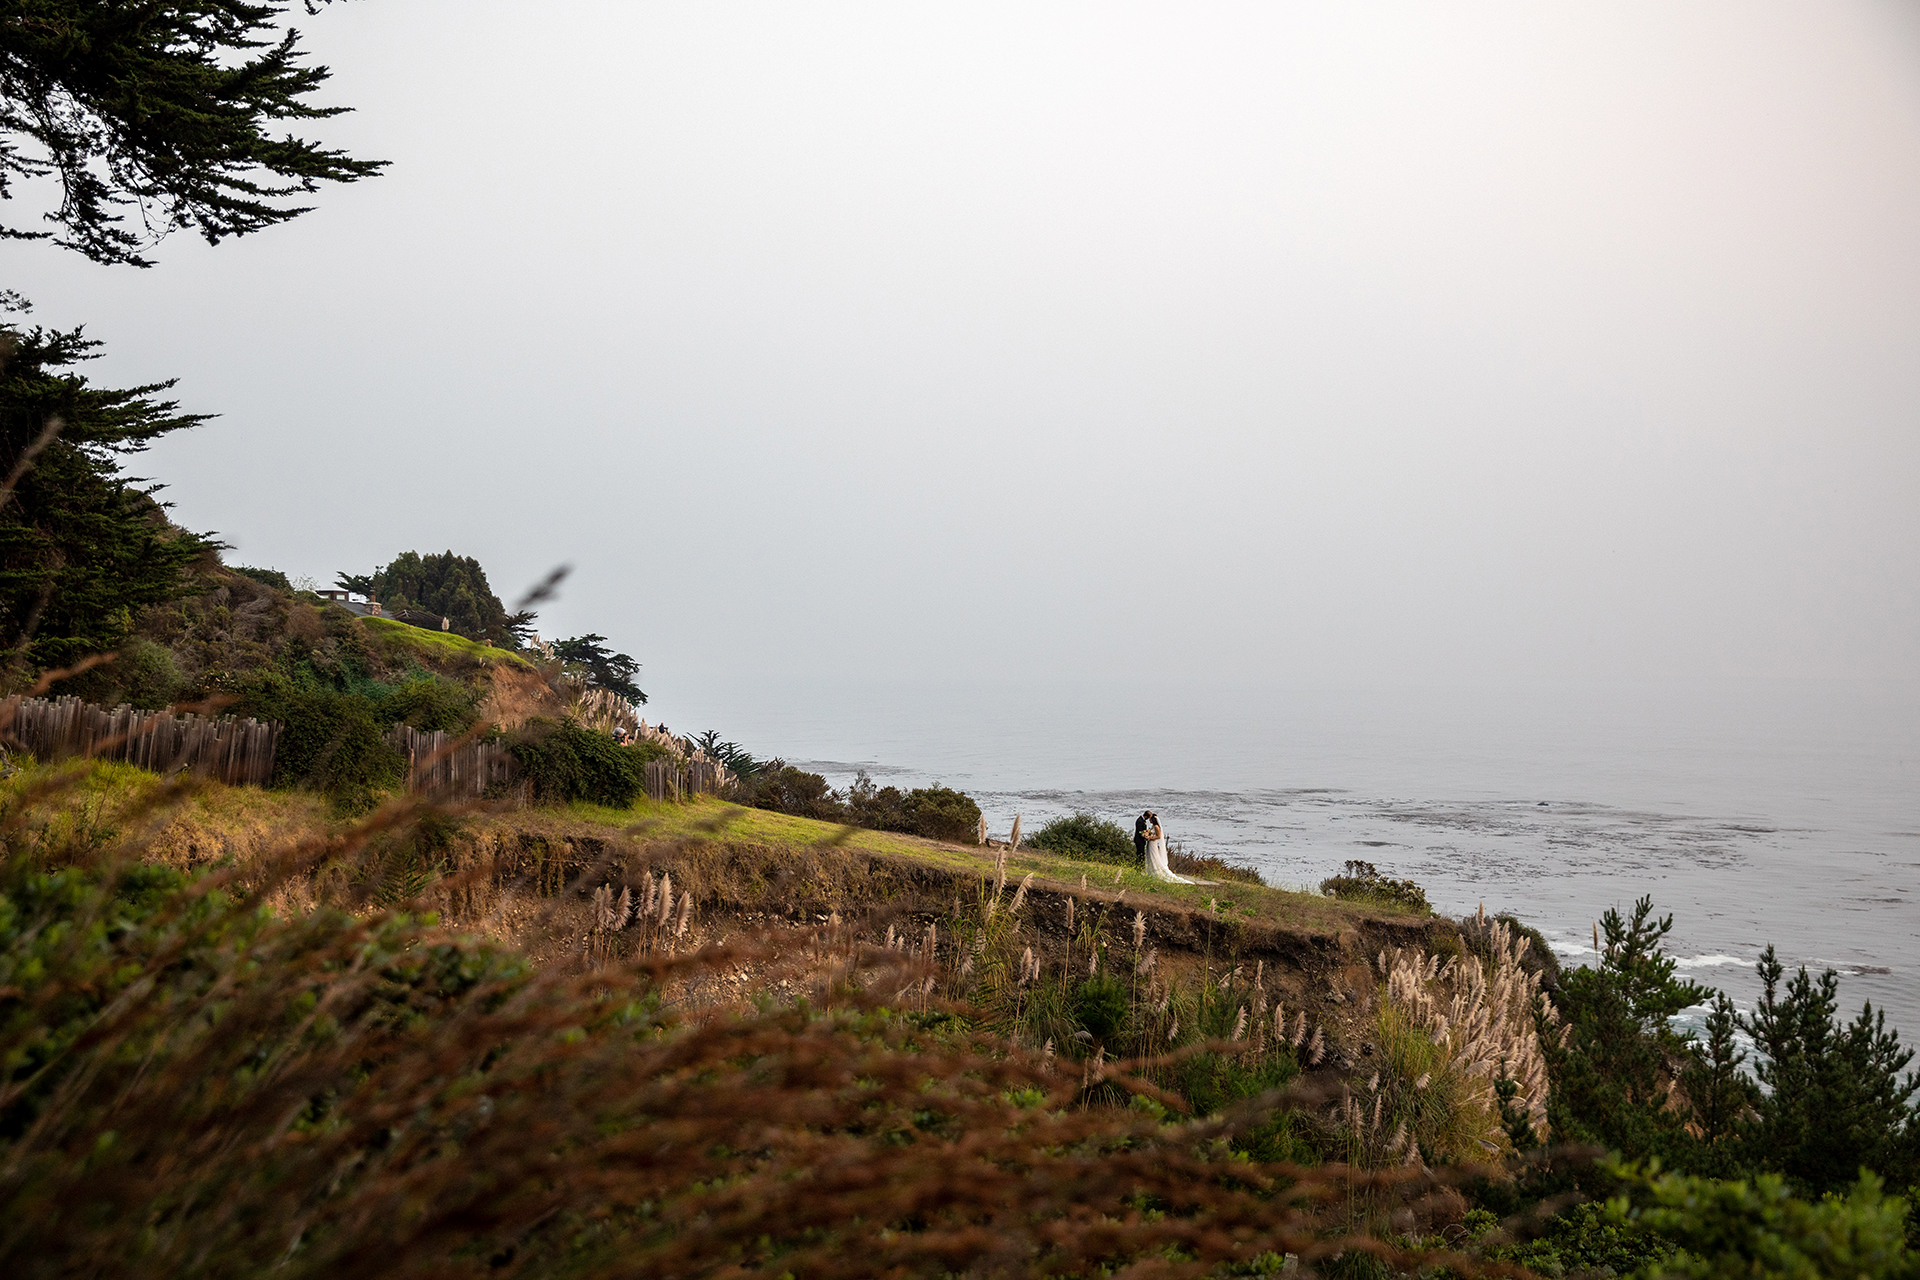 Wind and Sea Big Sur Wedding - CA Couple Portraits | The bride and groom spend a solitary moment enjoying their surroundings